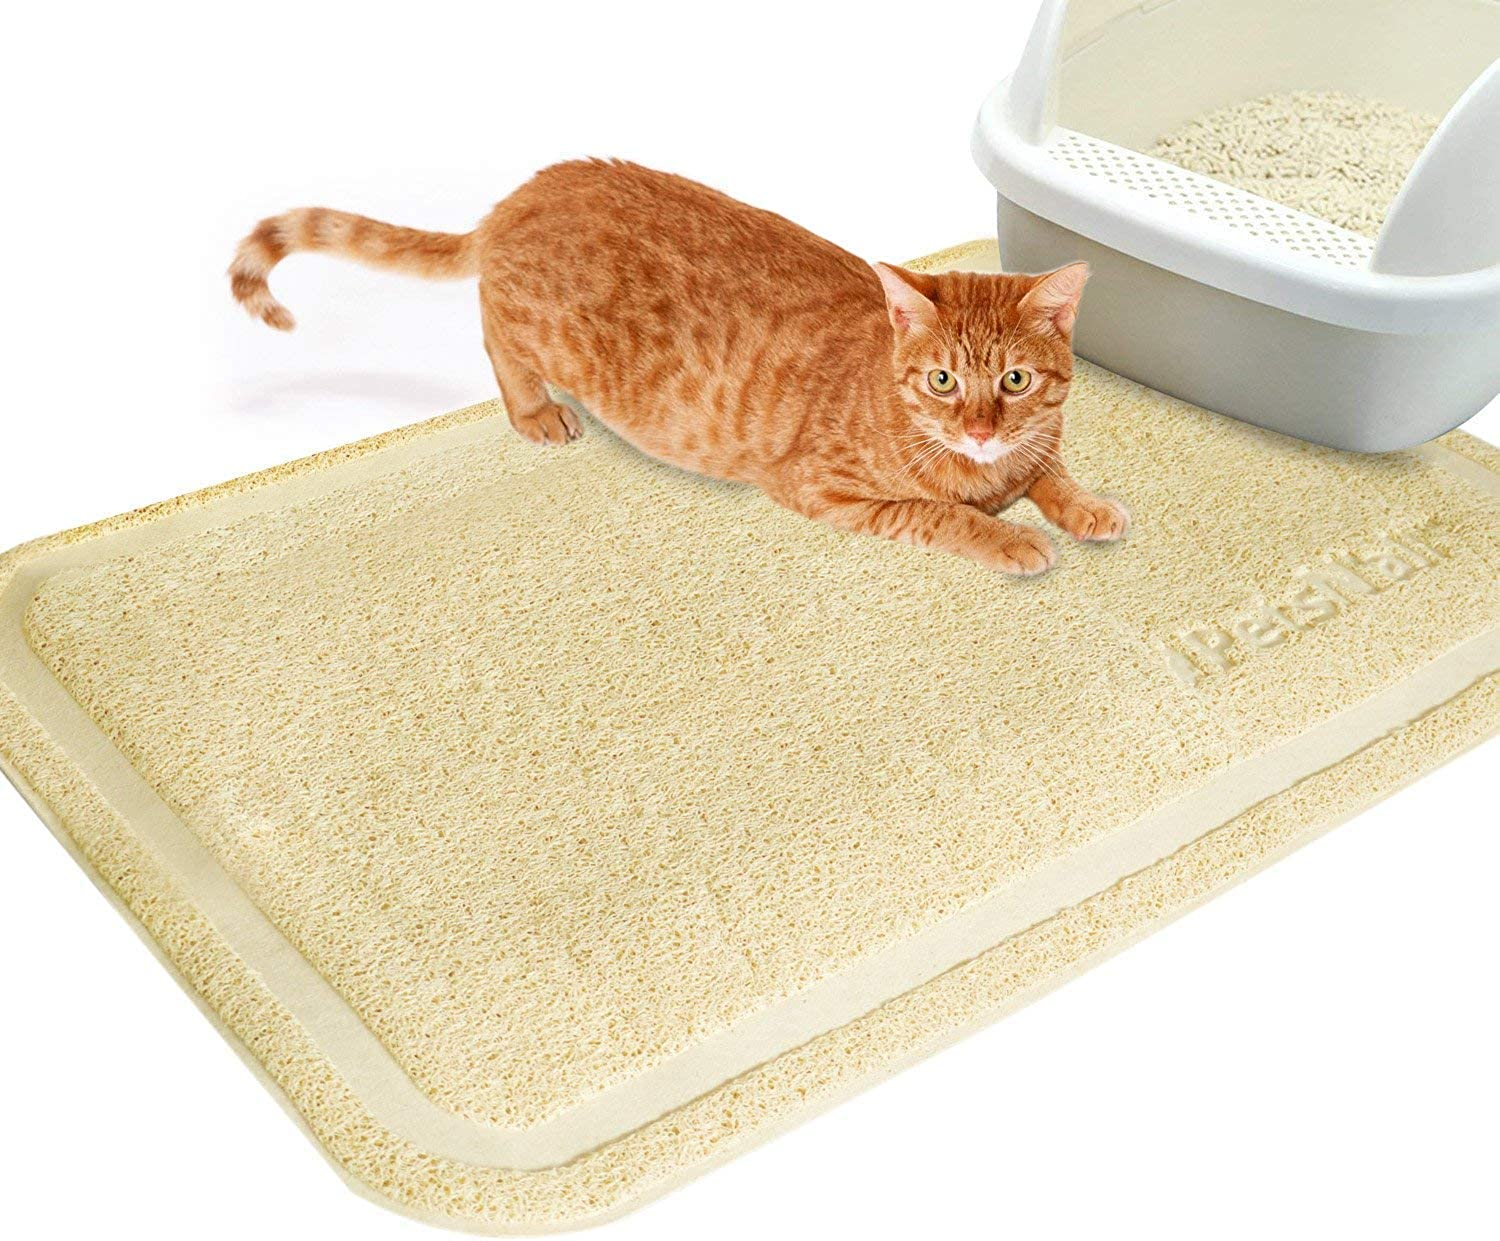 Cat Litter Mat by PetsN'all  Catch All Easy to Clean Litter Box Mat  Beige, Extra Large (35.5 x 24  90 x 60 centimeters)